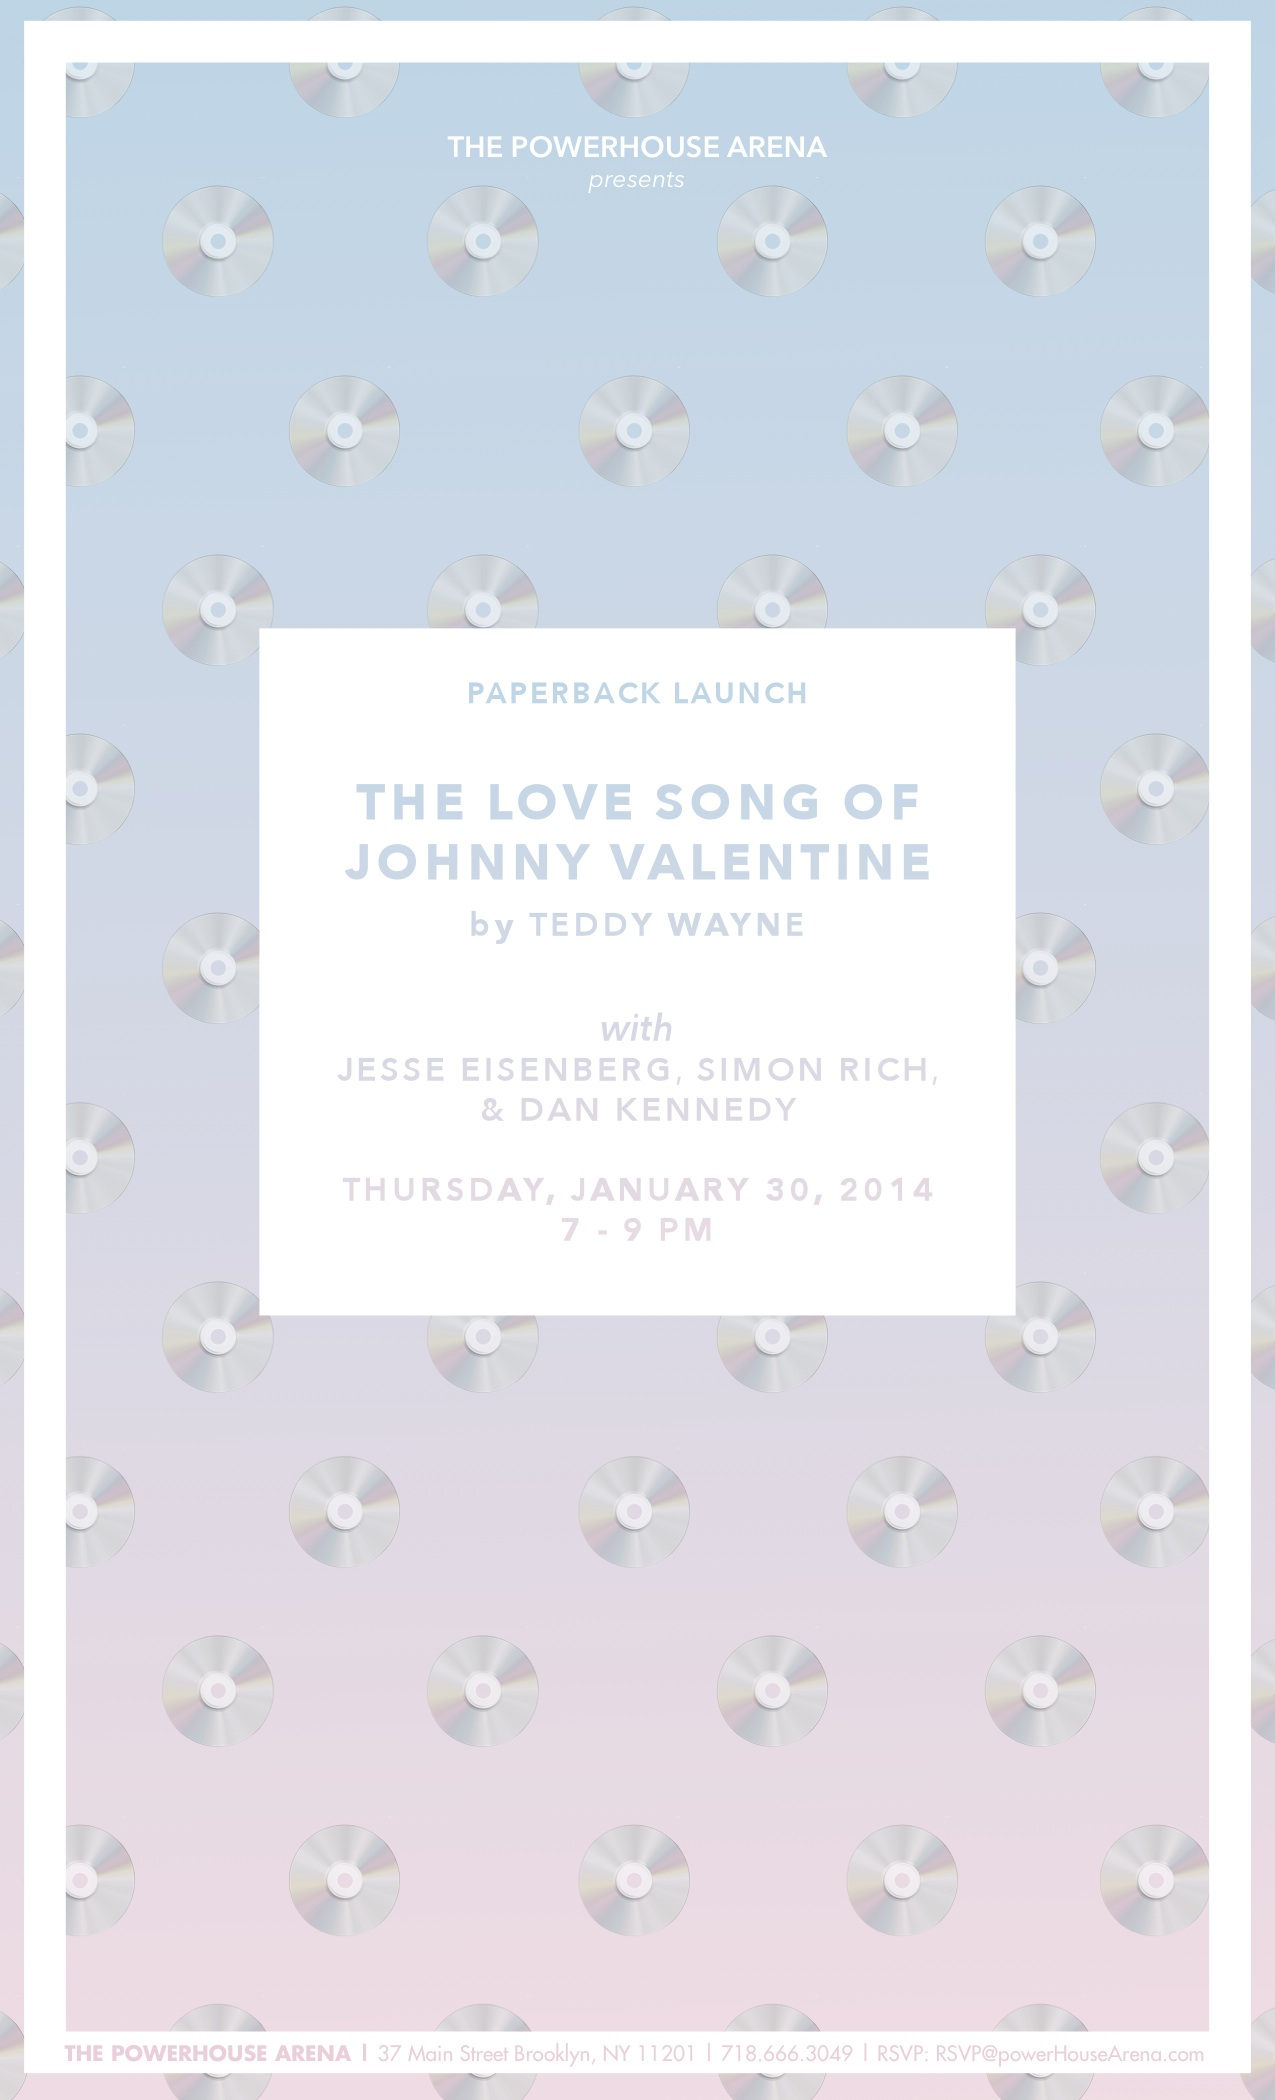 Paperback Launch: The Love Song of Jonny Valentine by Teddy Wayne, with Jesse Eisenberg, Simon Rich, and Dan Kennedy